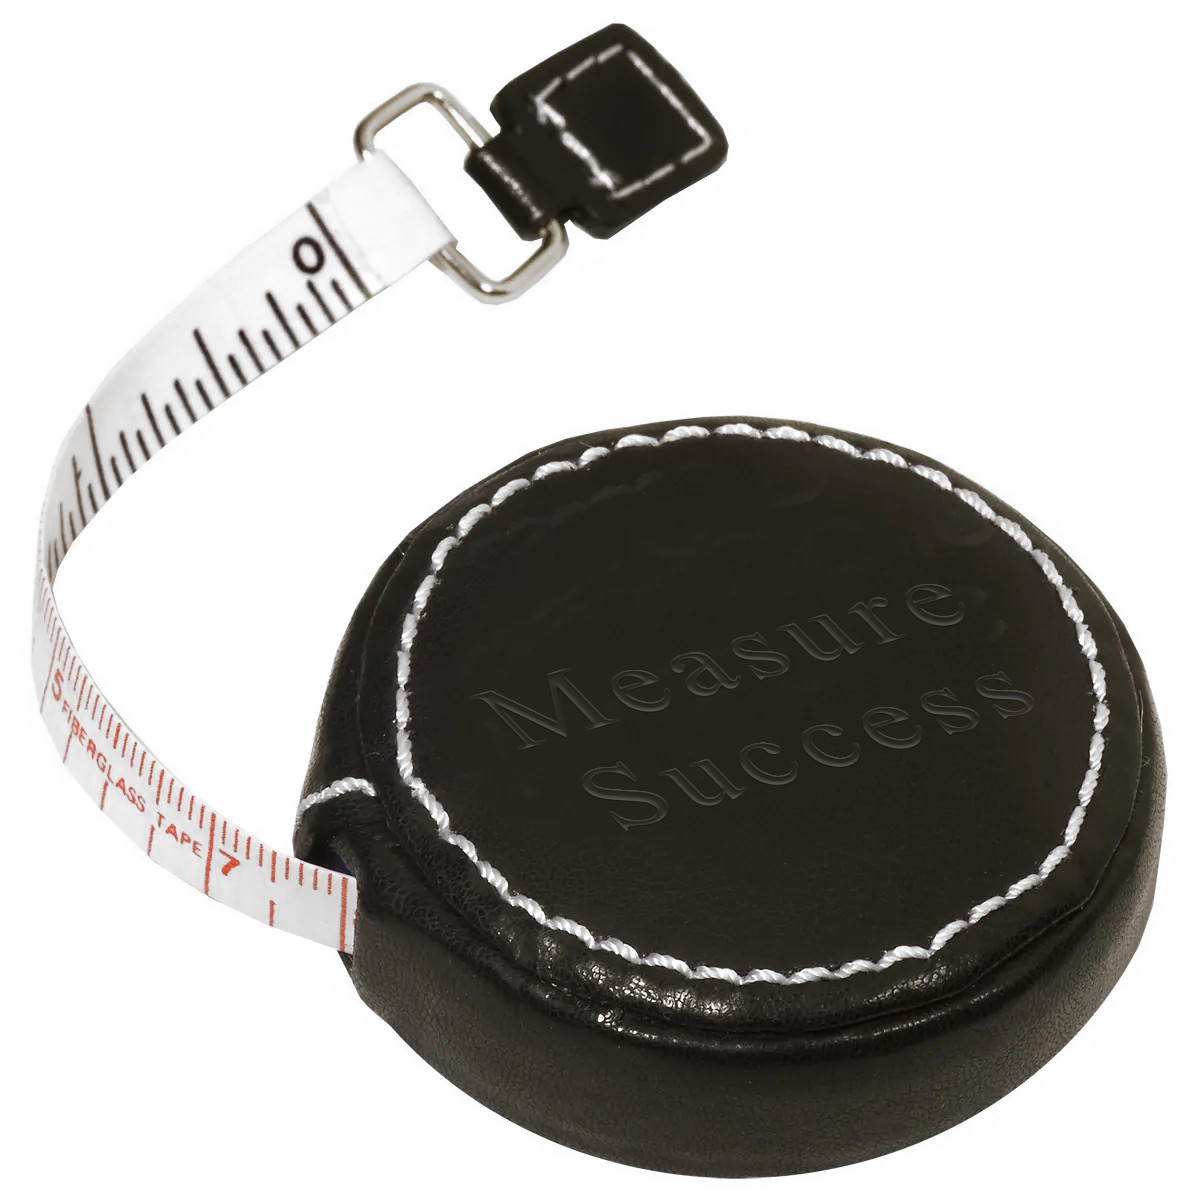 Round Cowhide Leather Locking Measure & Press-Release Tape Measure